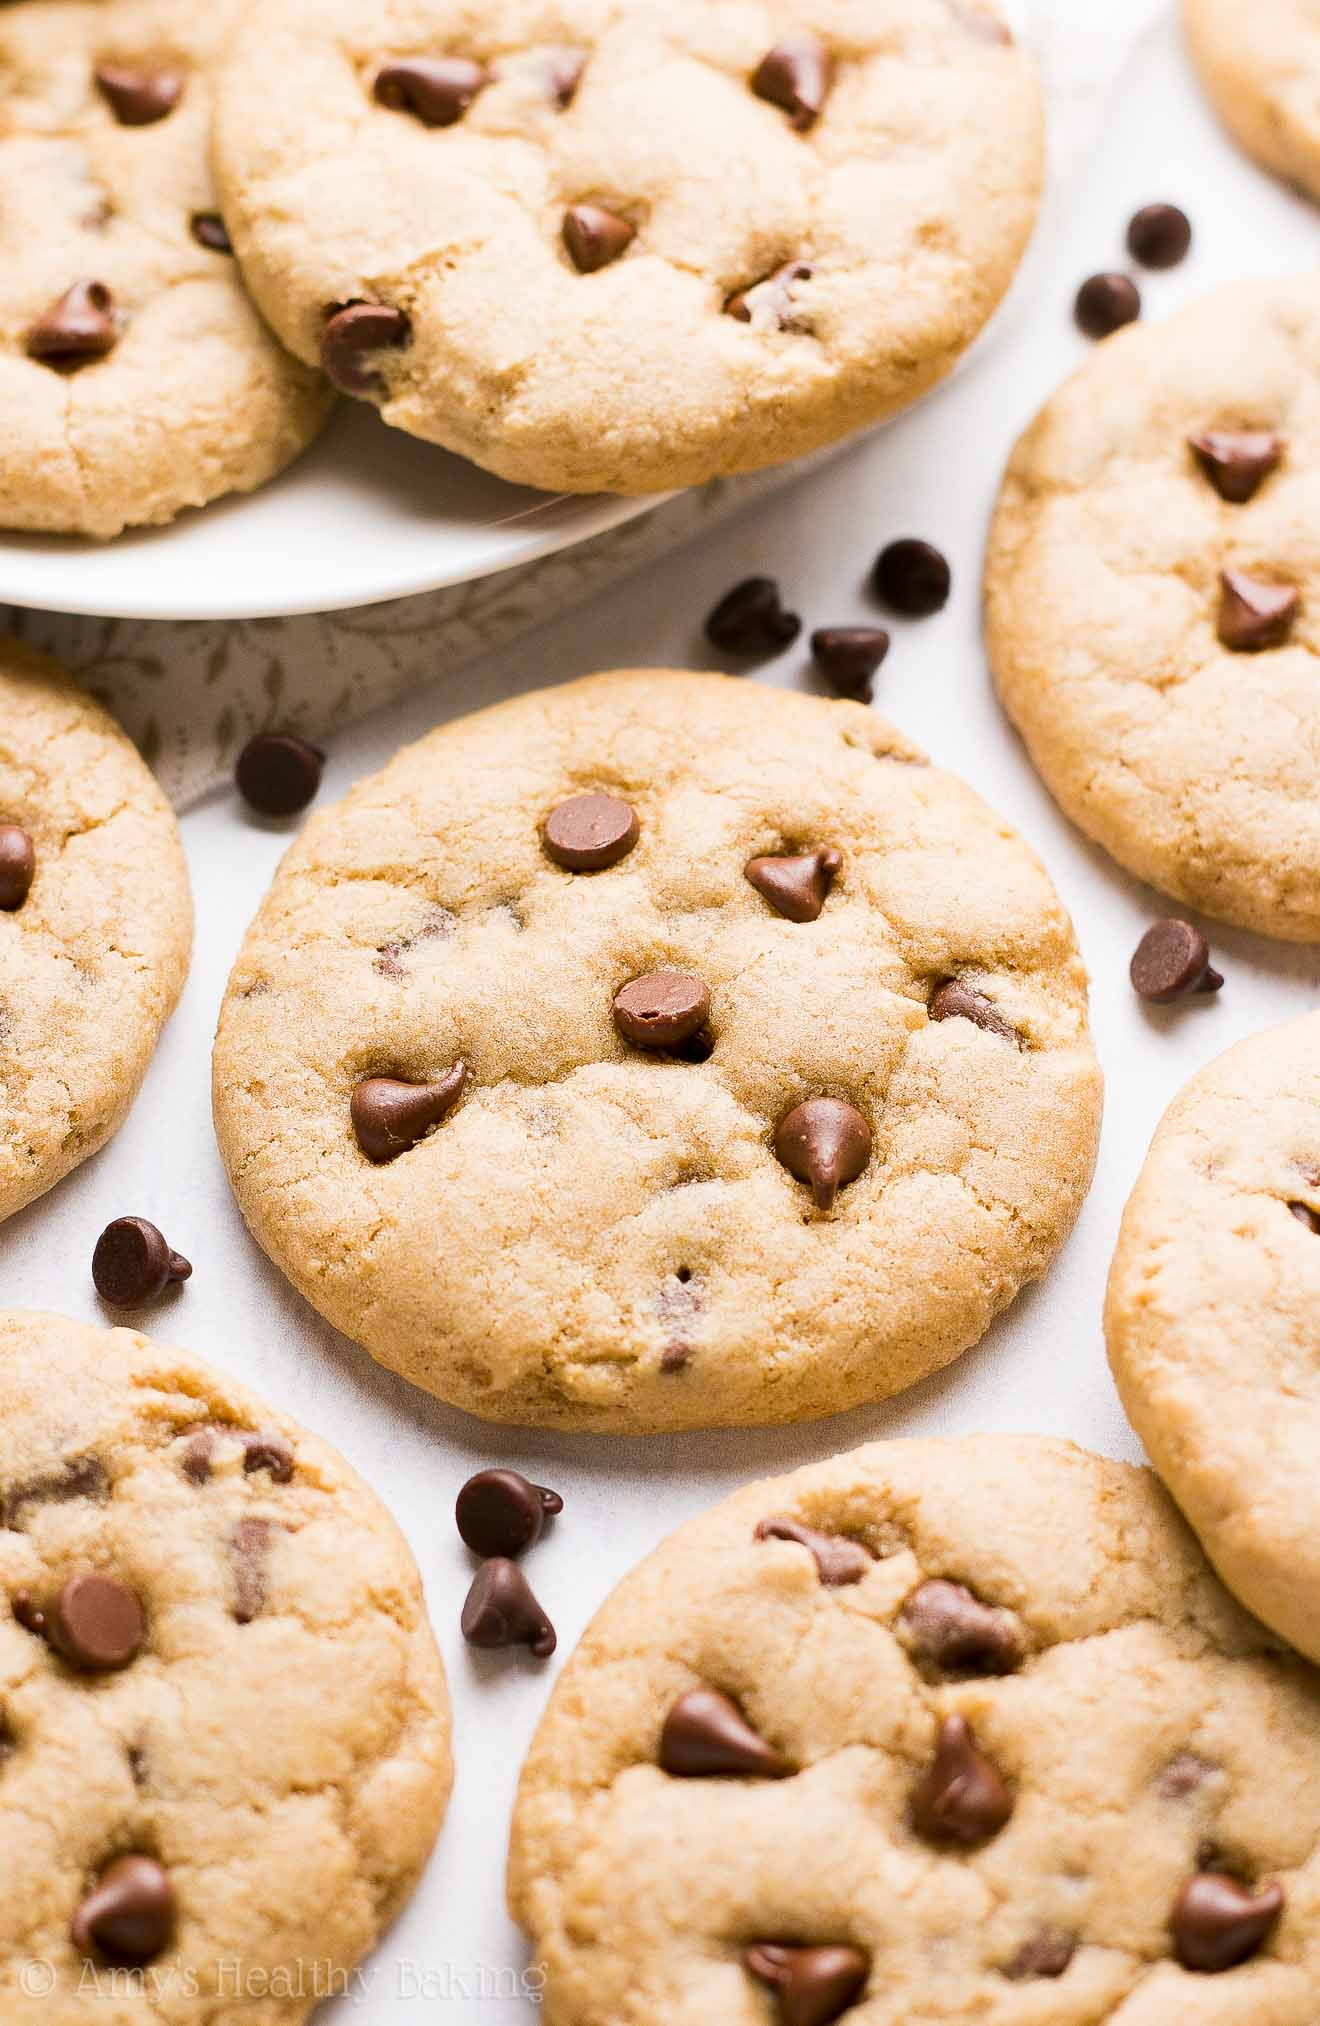 How To Make Soft Chocolate Chip Cookies Without Vanilla Extract